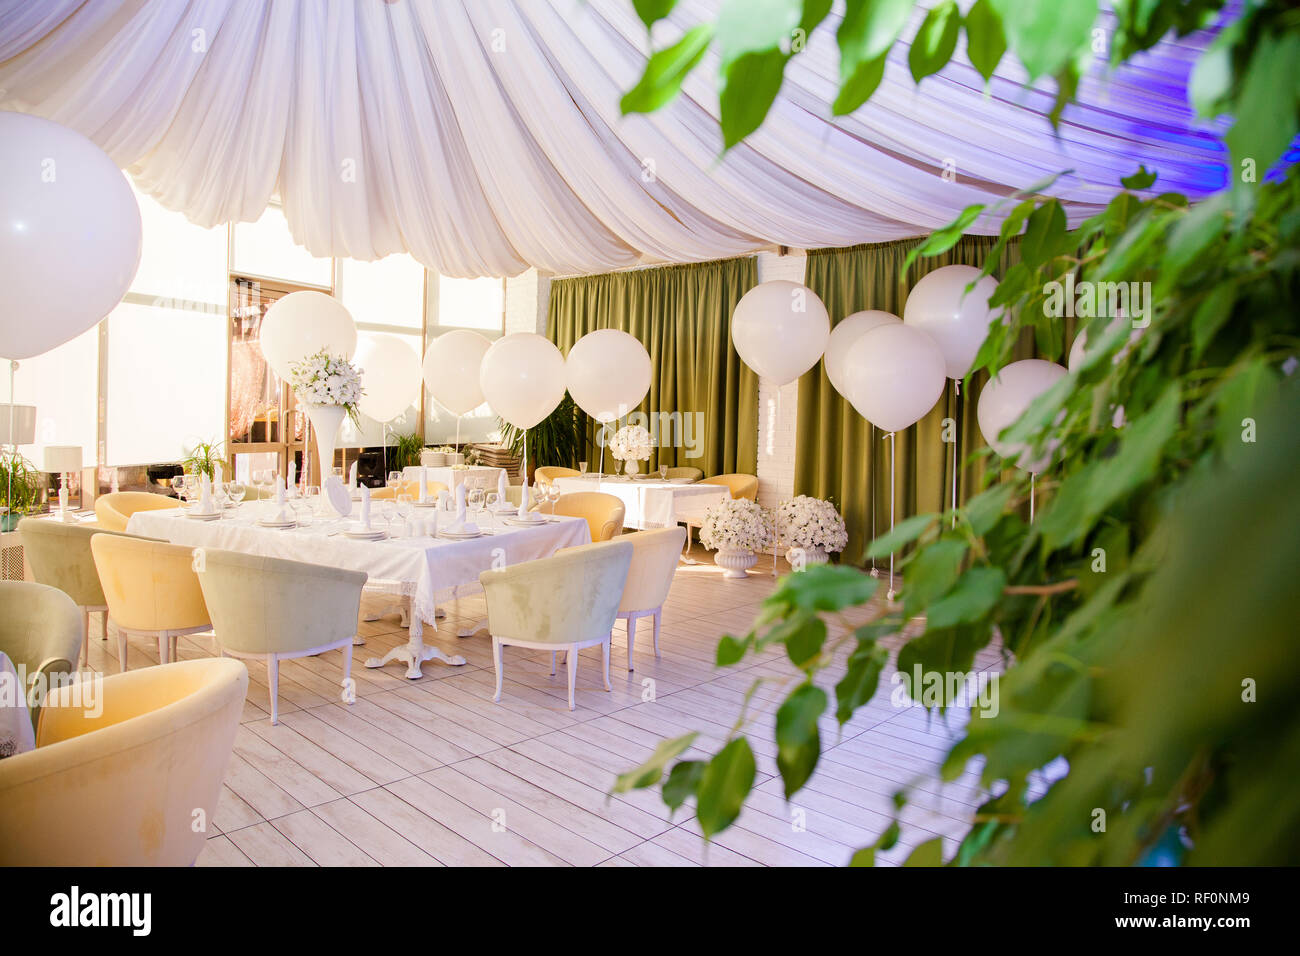 Wedding decor. Wedding tables in restaurant with white